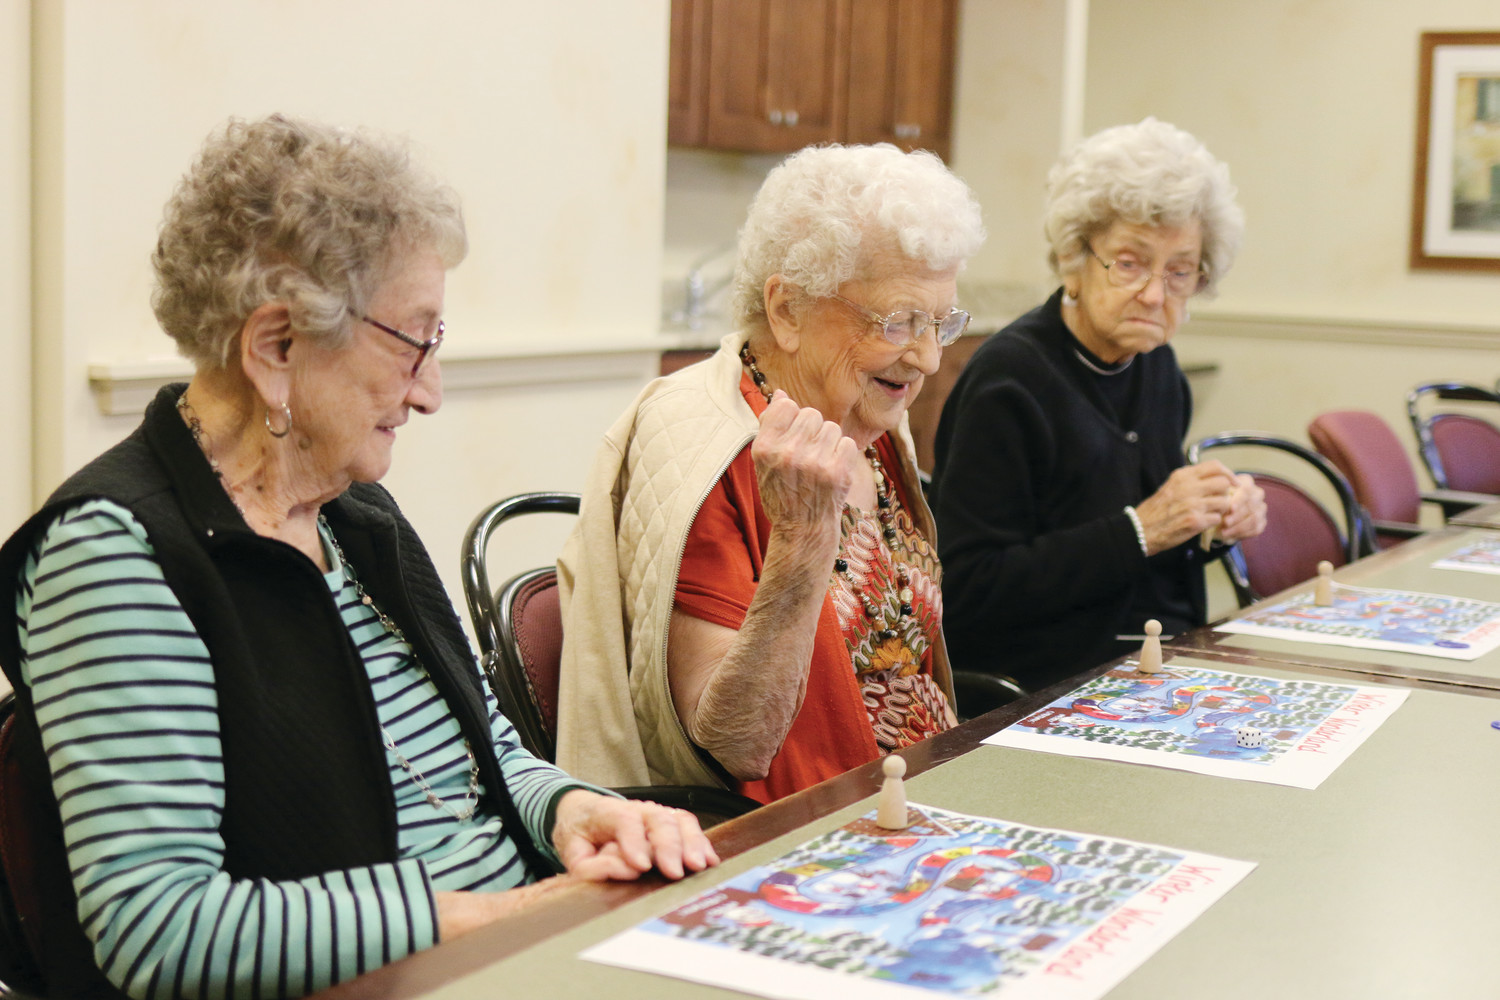 Residents of The Villa at Saint Antoine in North Smithfield enjoy an afternoon of Christmas games last week. The holidays at both The Villa and The Residence are filled with many activities for seniors to take part in each day.